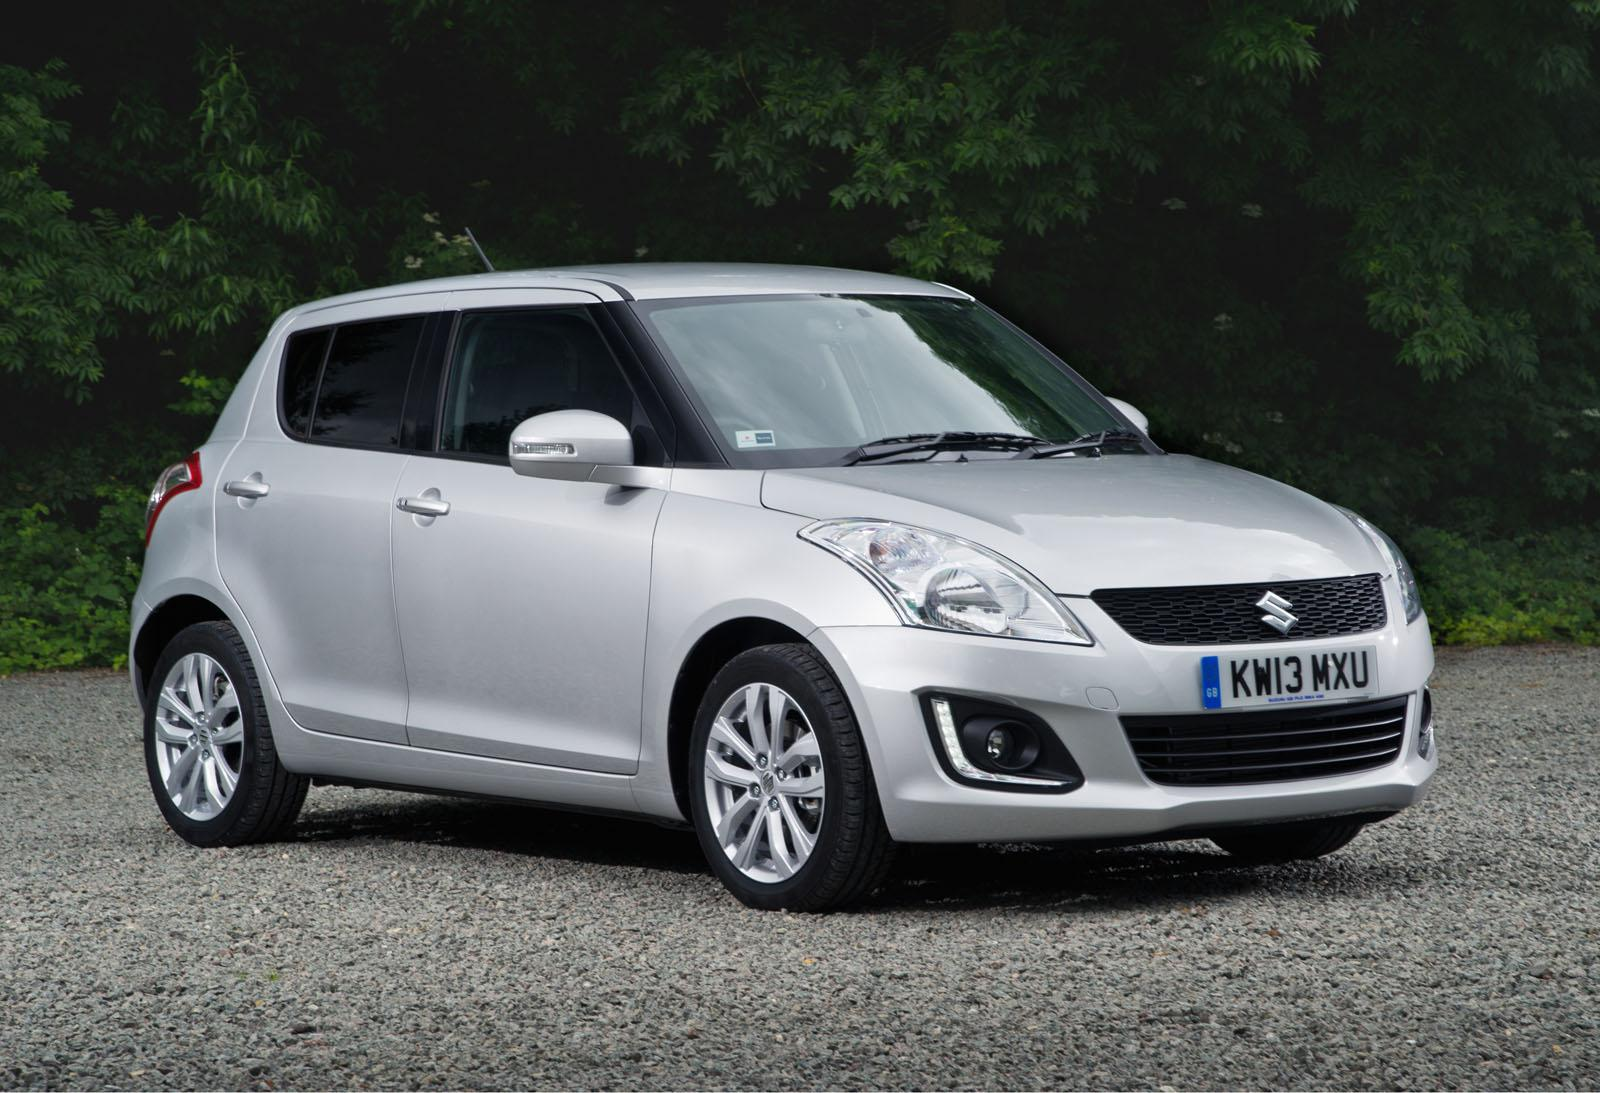 2013-Maruti-Suzuki-Swift-facelift-